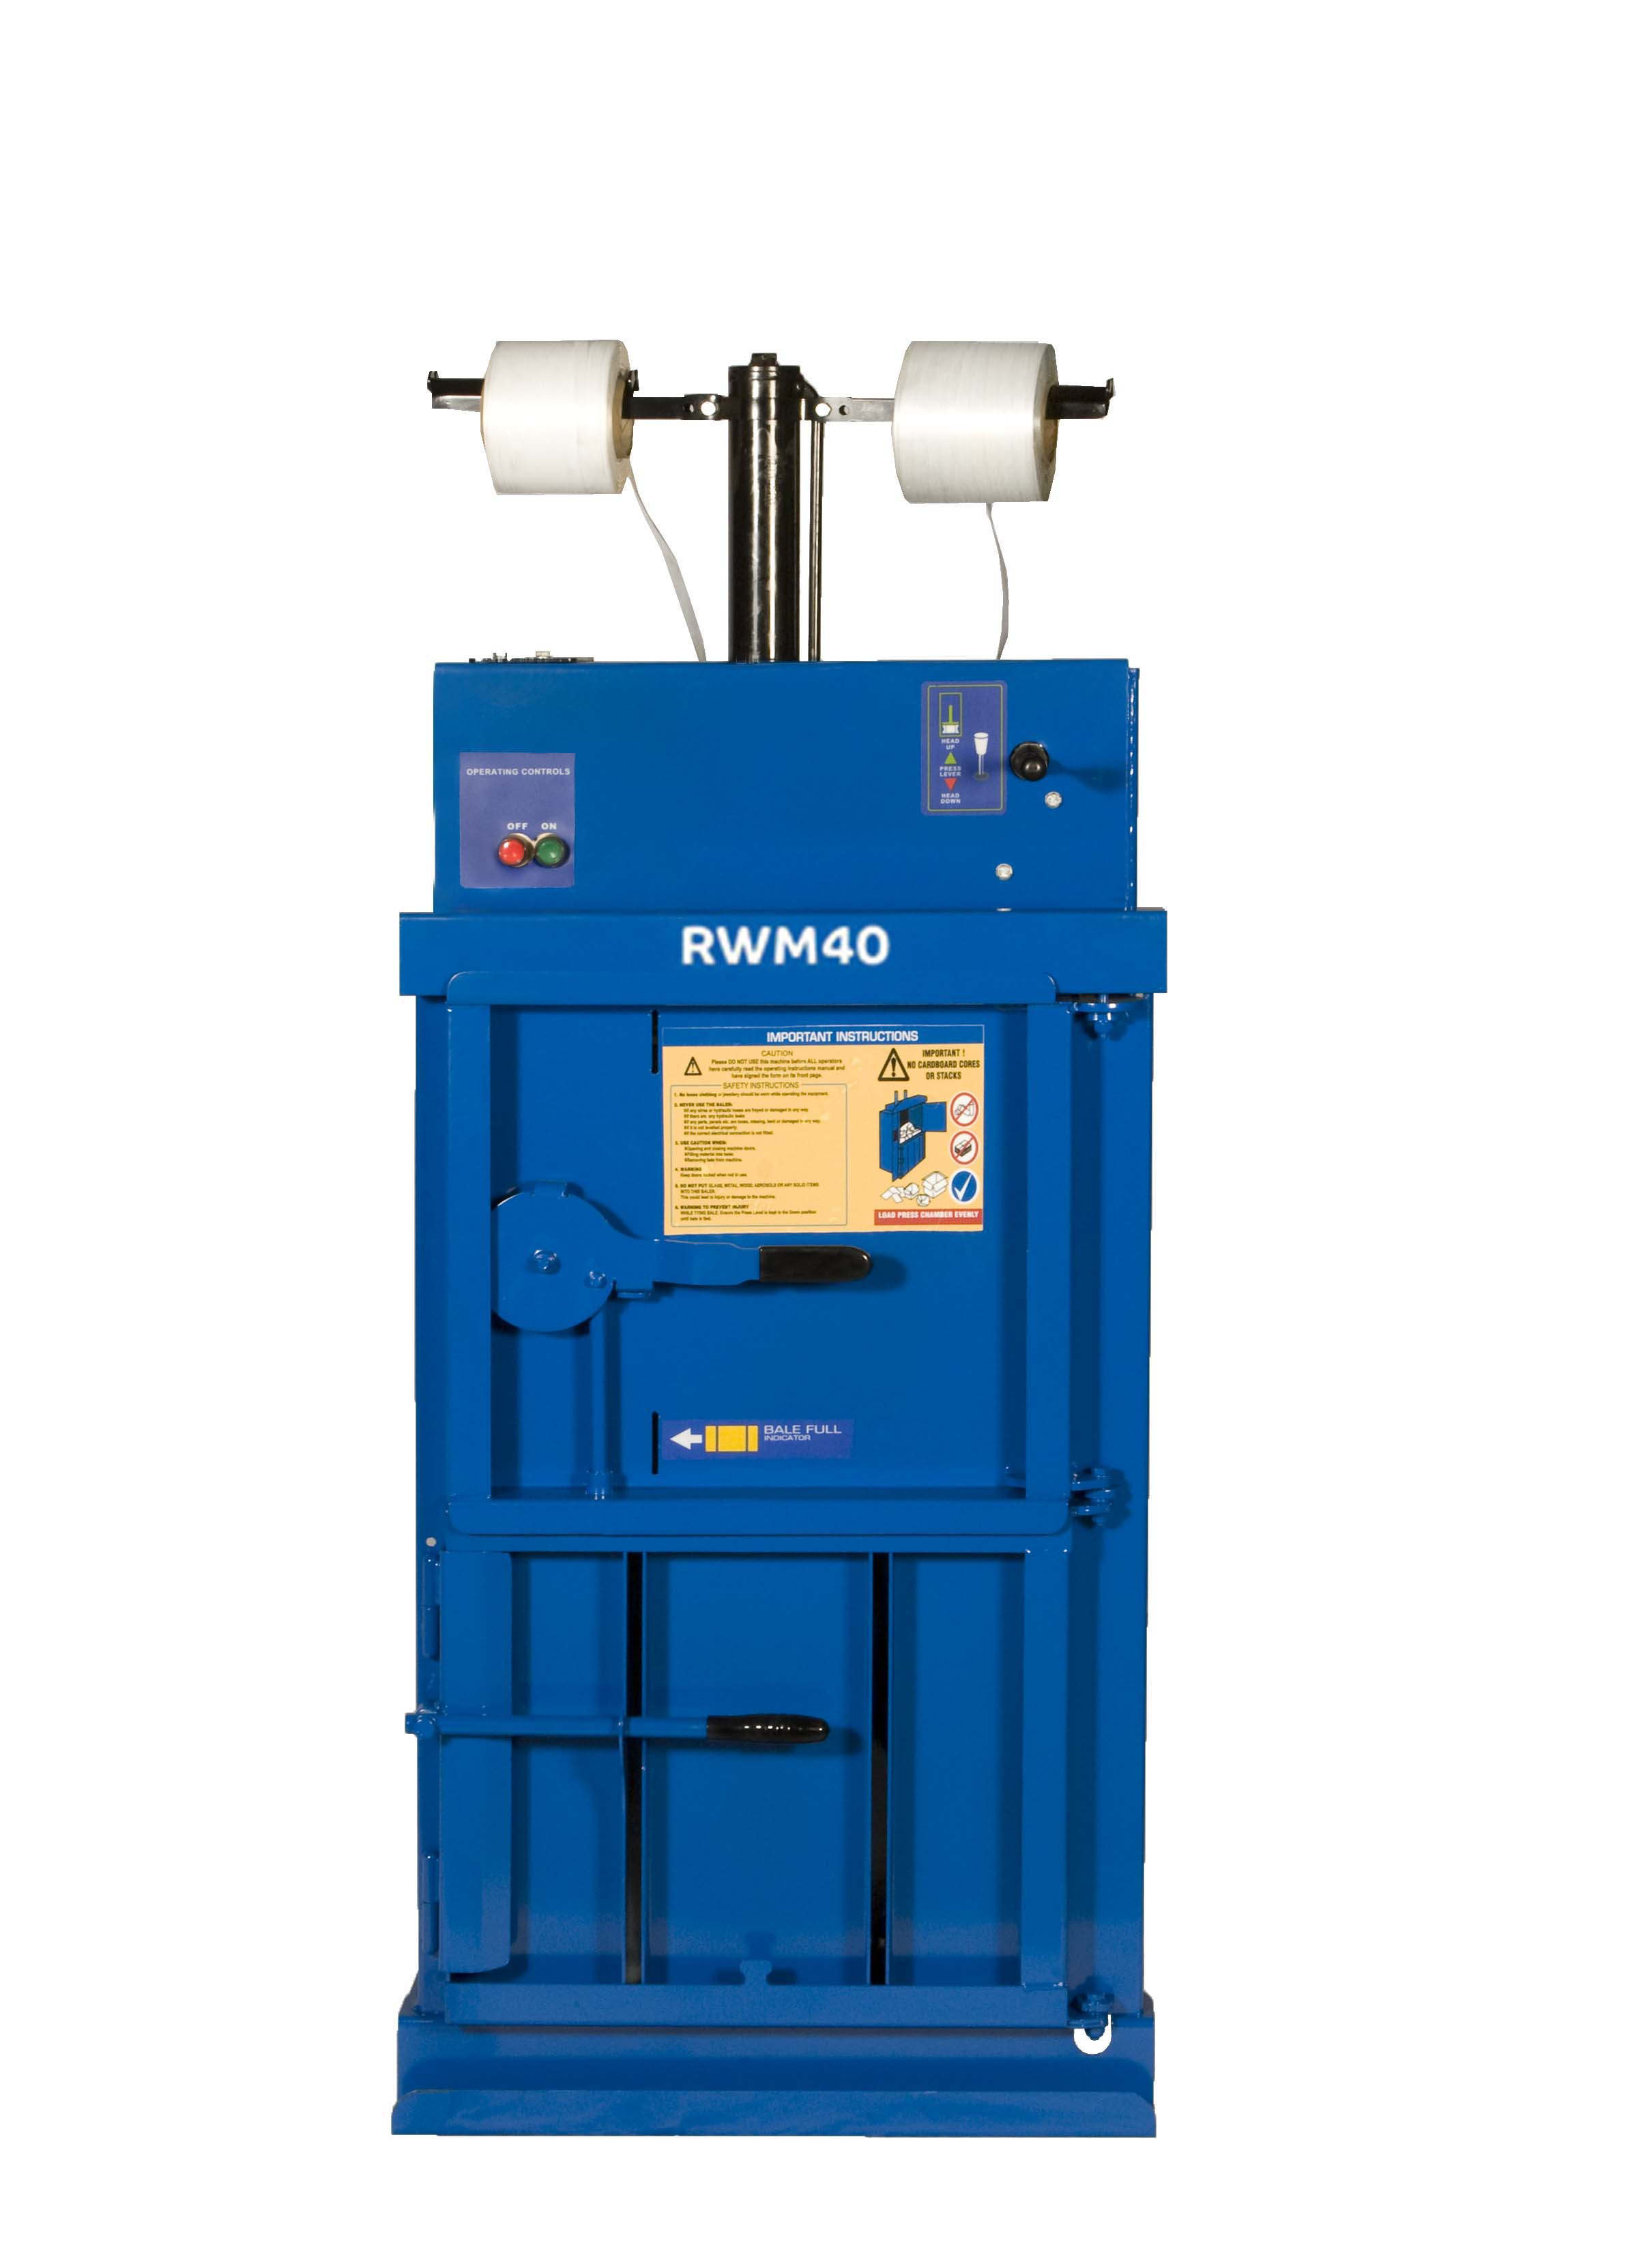 Riverside waste baler supplied in kit-form jigsaw